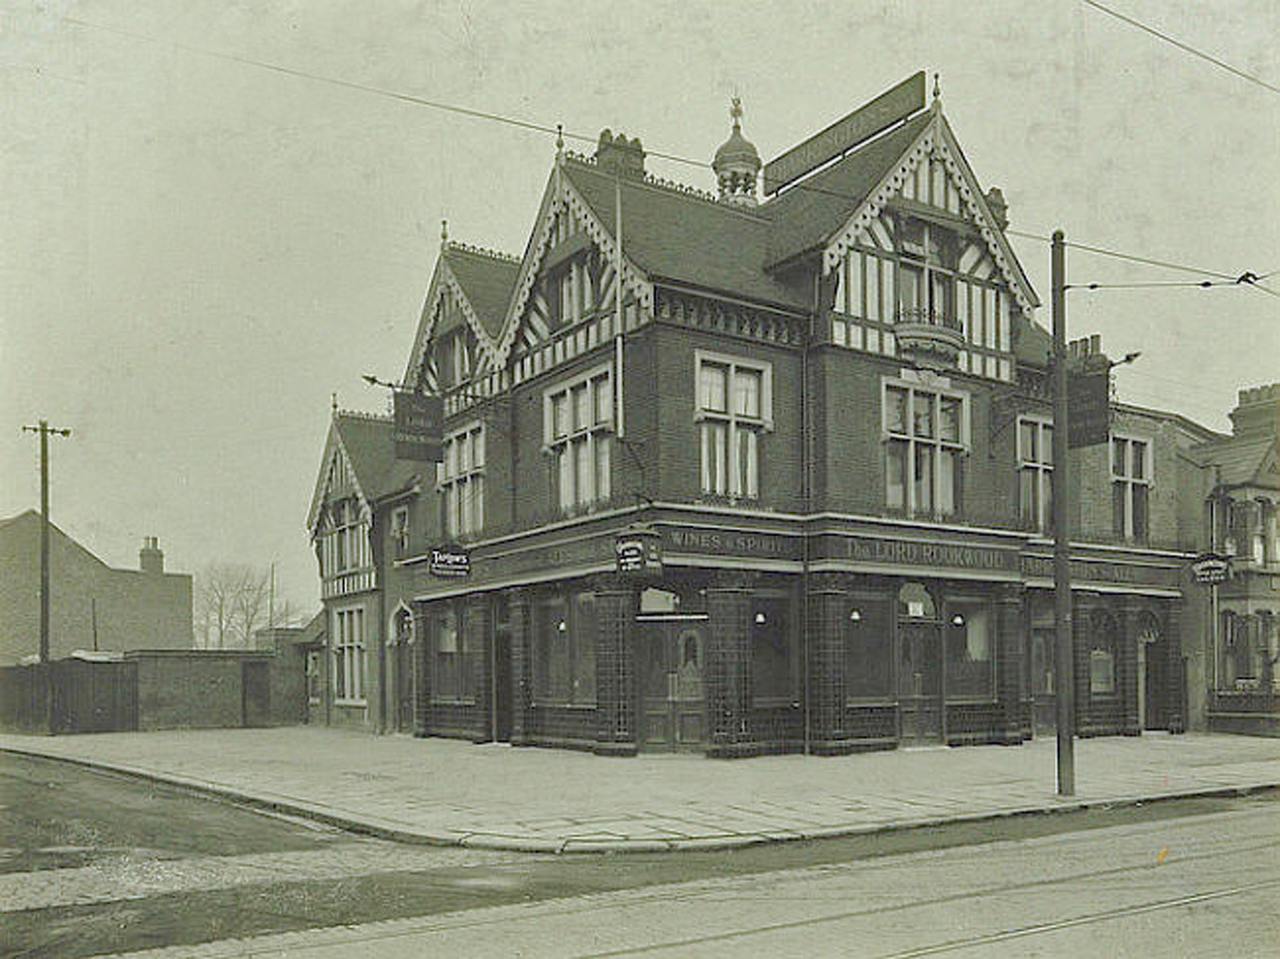 The pub in 1930s